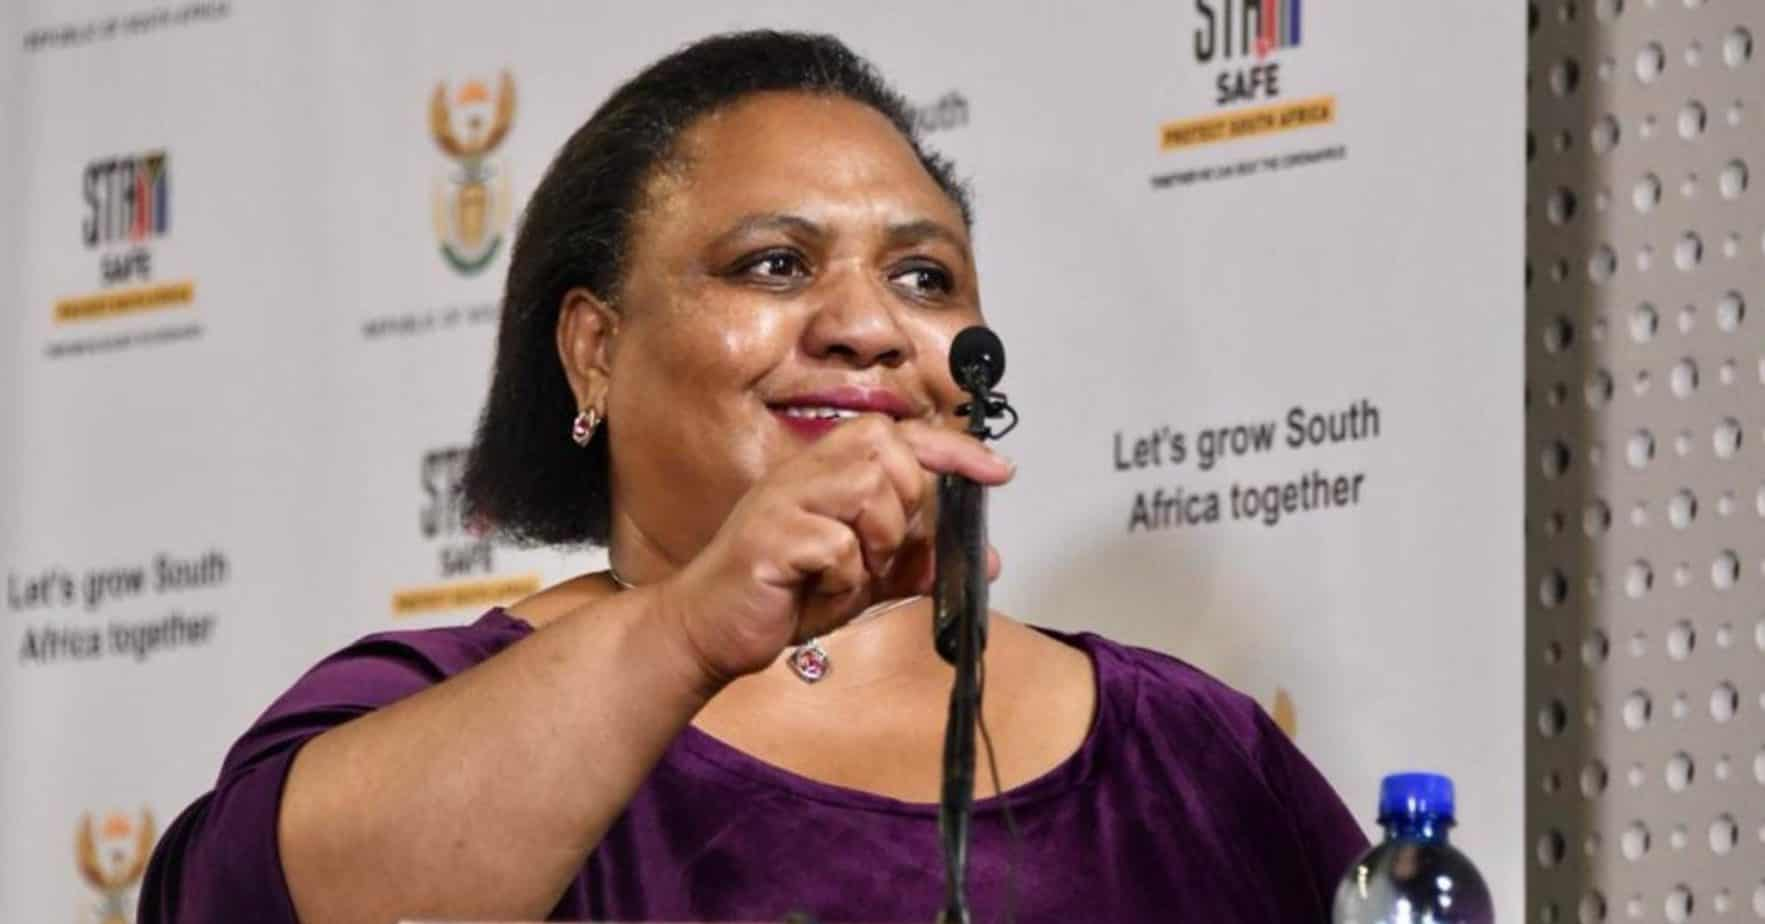 The minister of agriculture, land reform and rural development, Thoko Didiza, announces the new the Land Court Bill earlier today. Photo: GCIS/Flickr